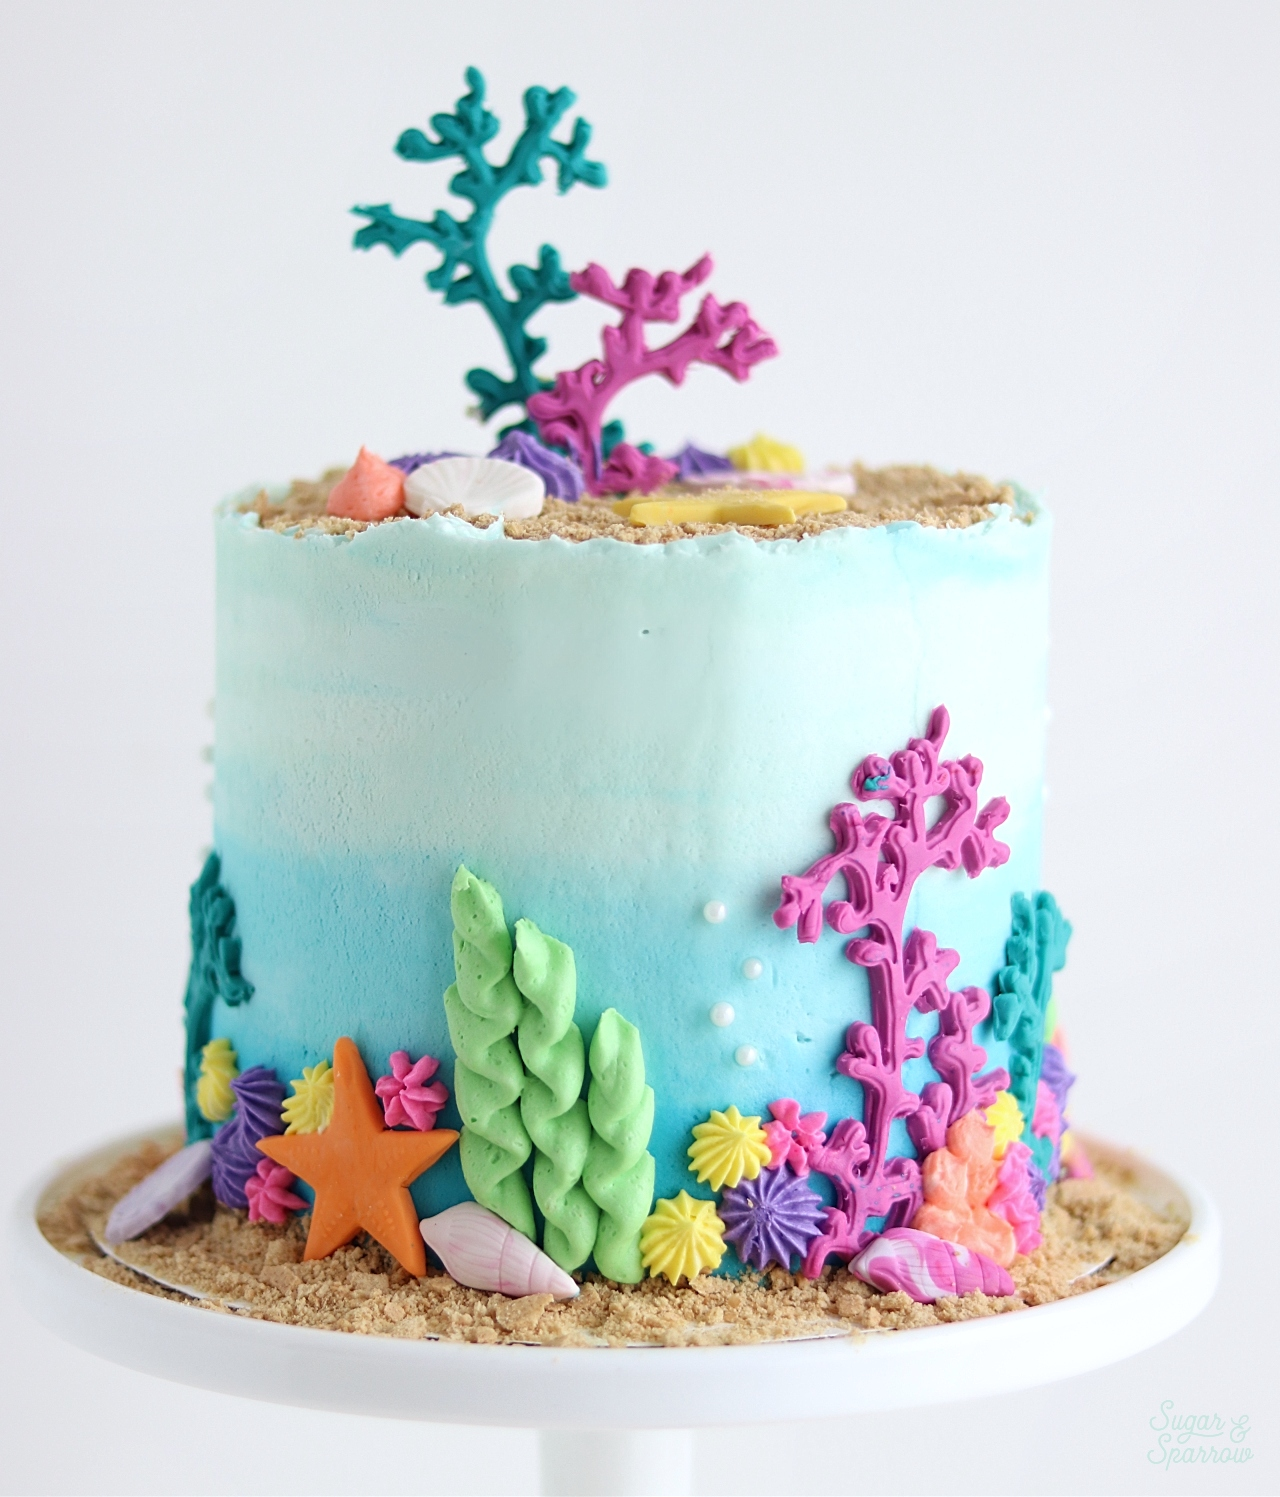 Pleasing Under The Sea Cake Tutorial Sugar Sparrow Funny Birthday Cards Online Inifodamsfinfo